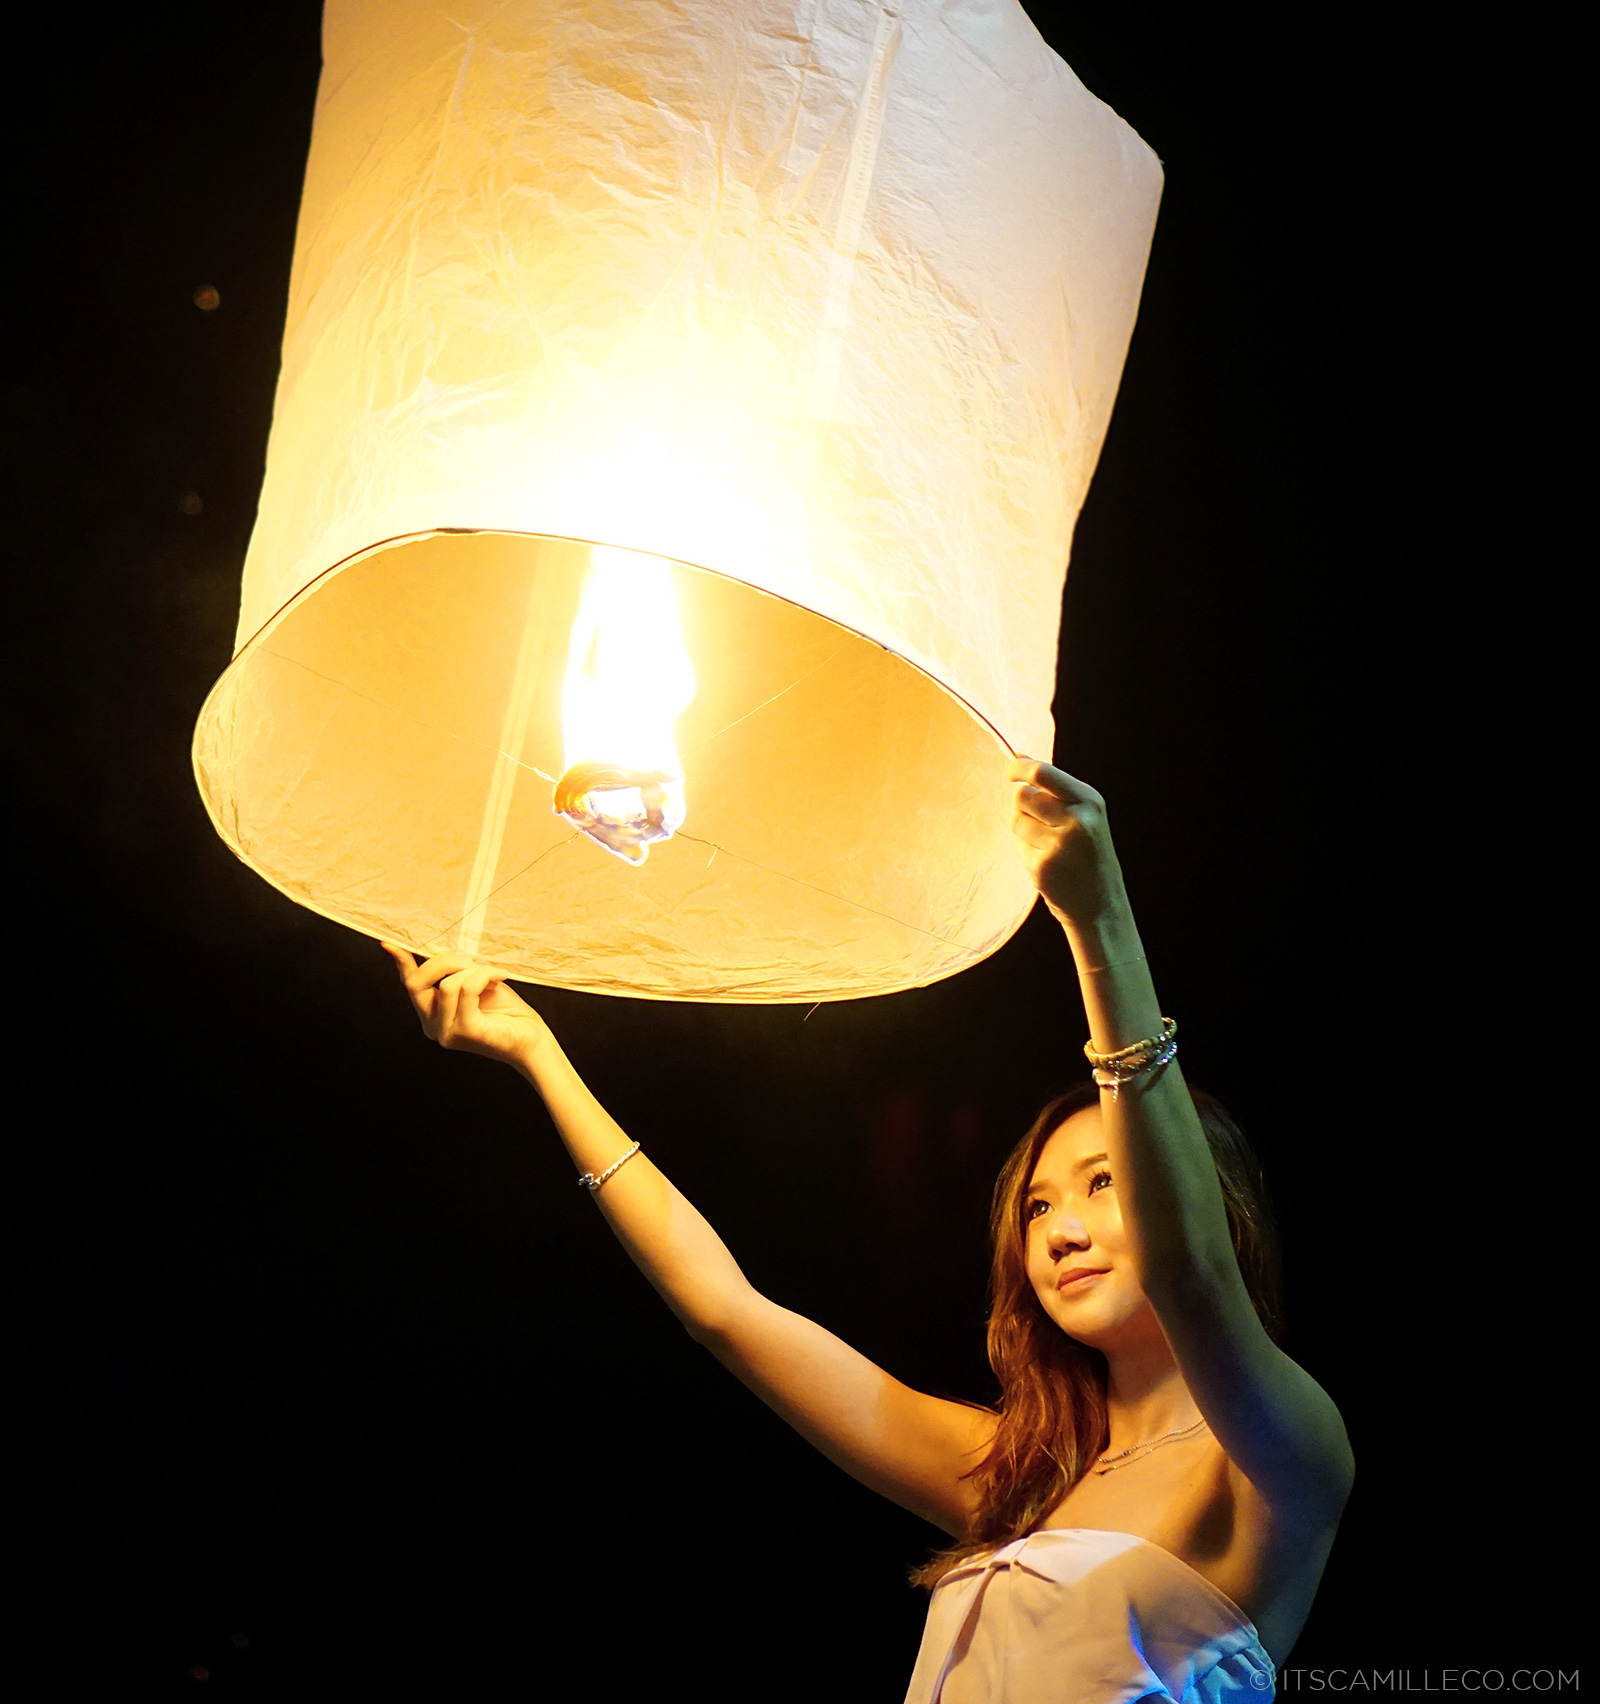 Yi Pen Loy Kathrong Lantern Festival in Chiang Mai | www.itscamilleco.com